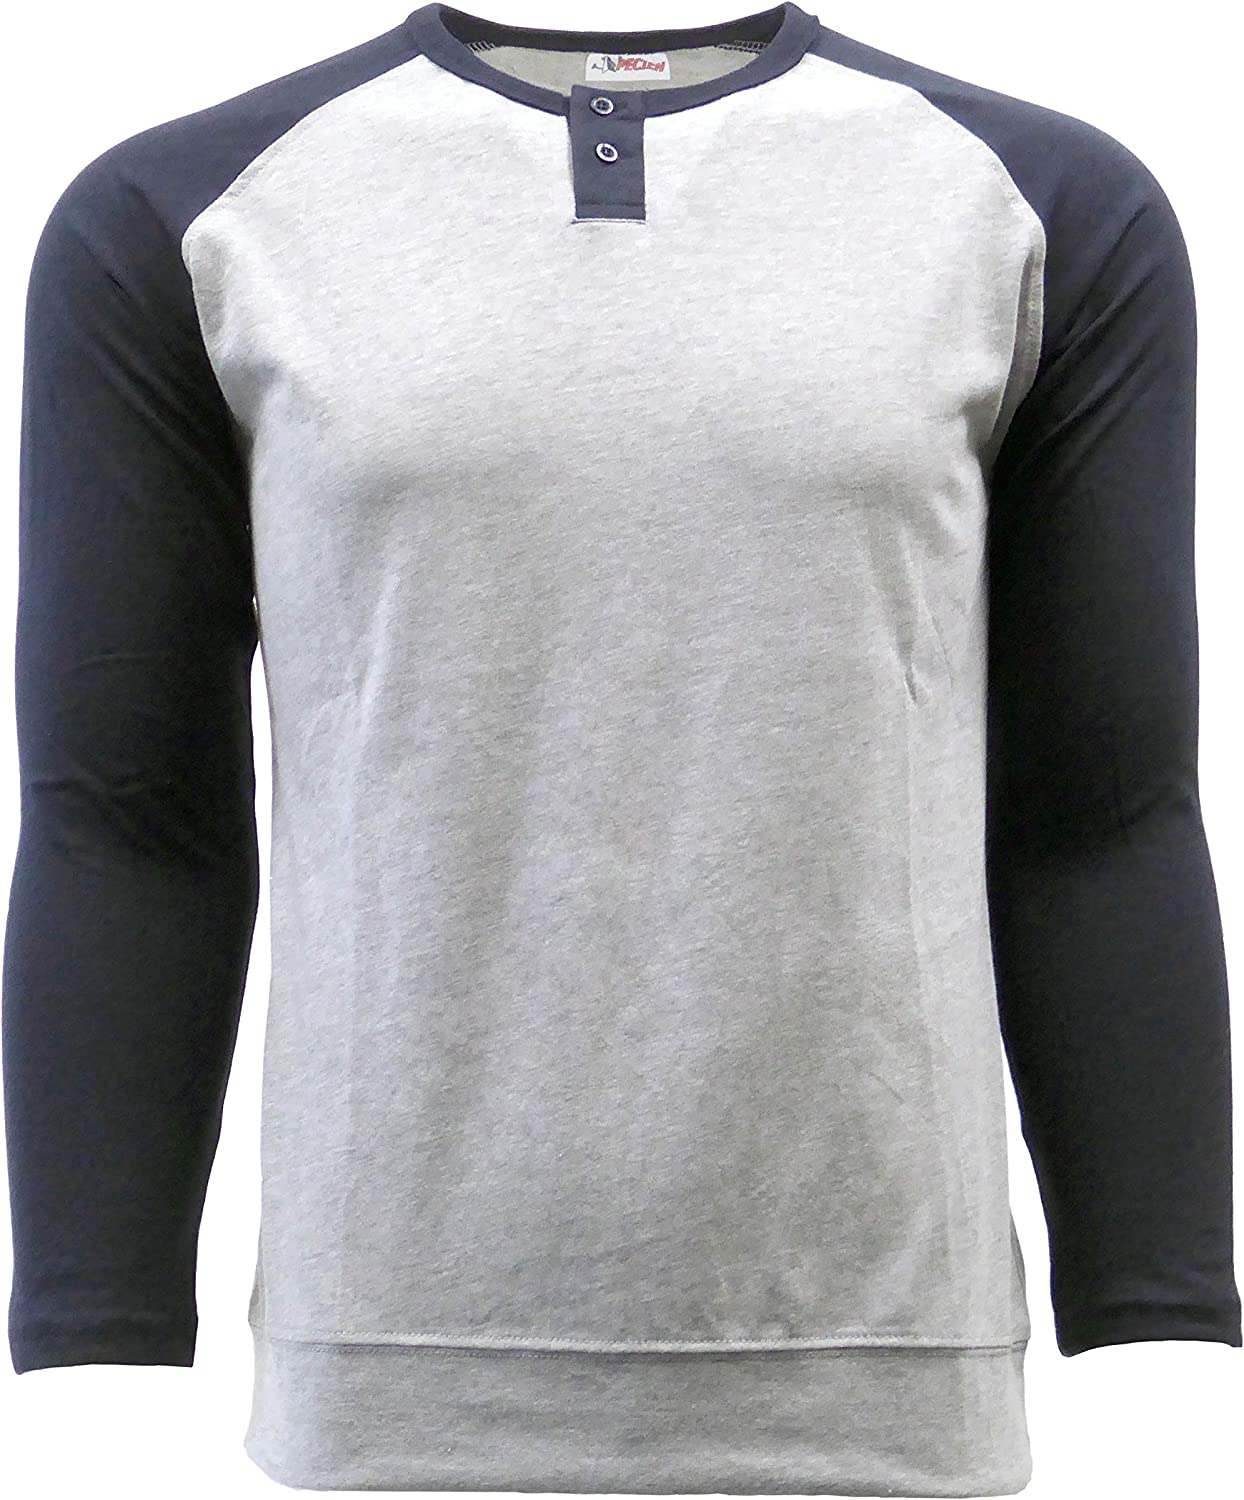 SPECIEN Sales of SALE Indianapolis Mall items from new works Long-Sleeve Color-Blocking Henley T-Shirt Jersey